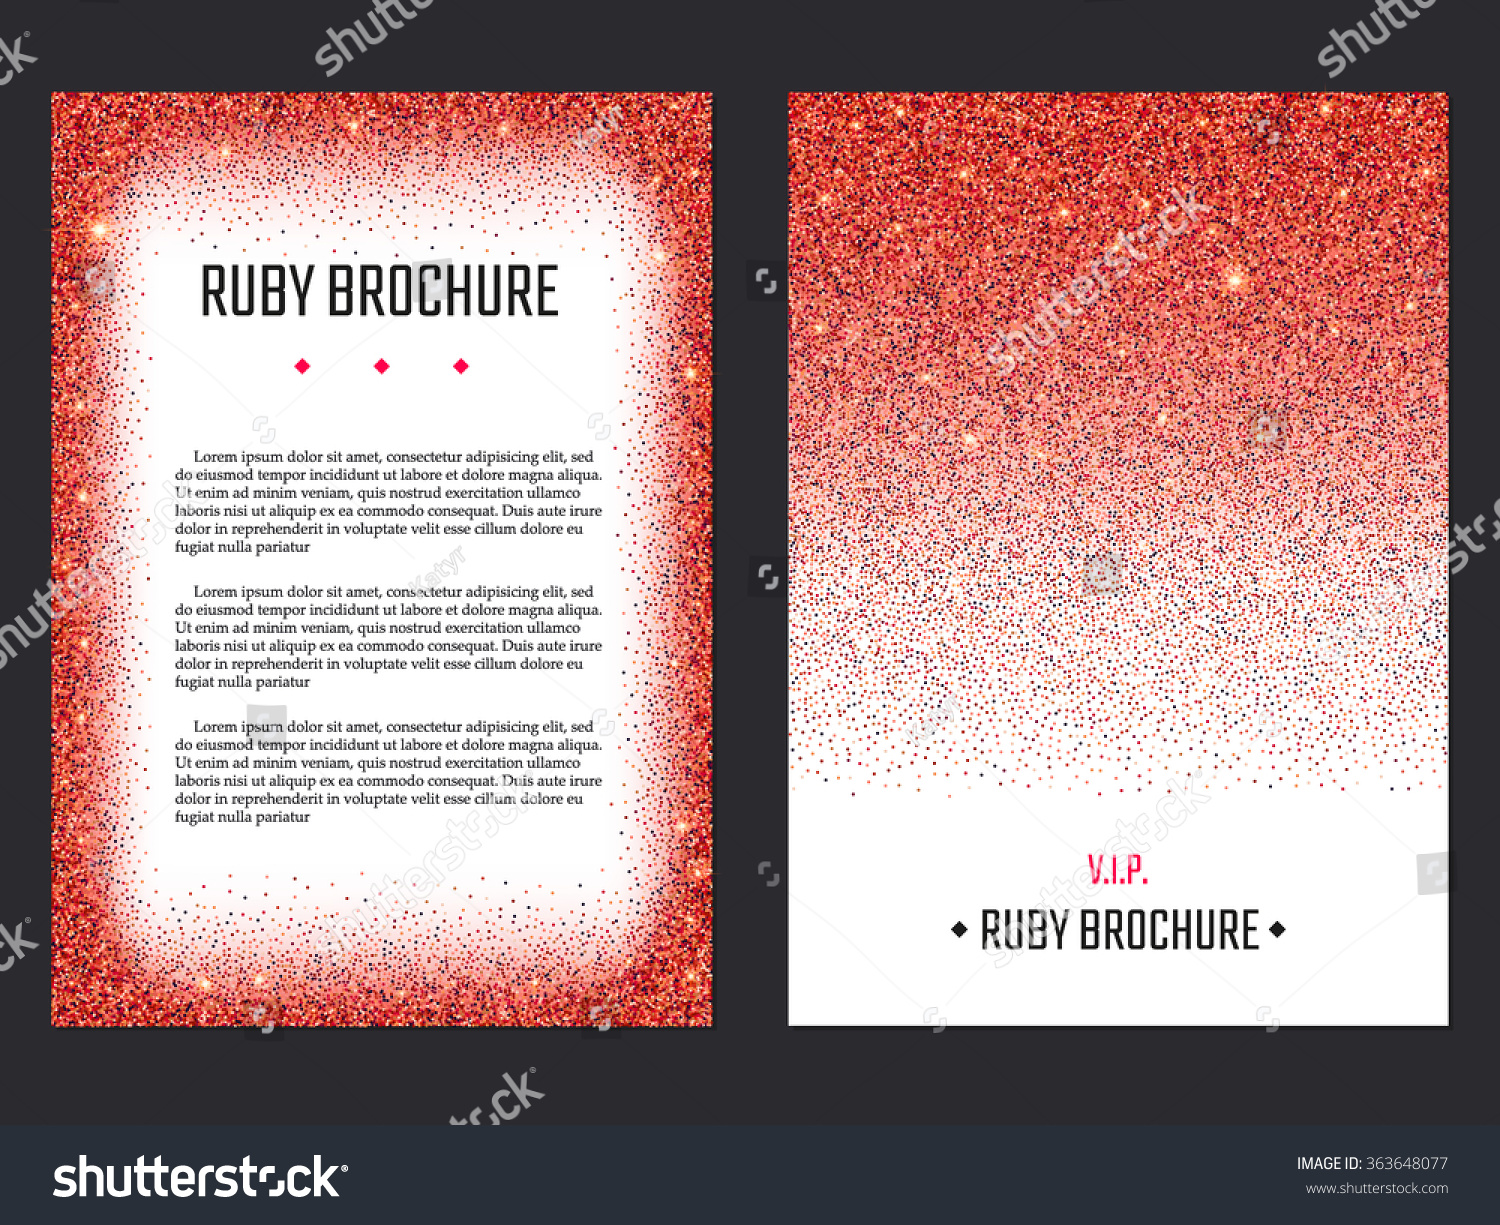 Vector Illustration Ruby Brochure Design Website Stock Vector ...